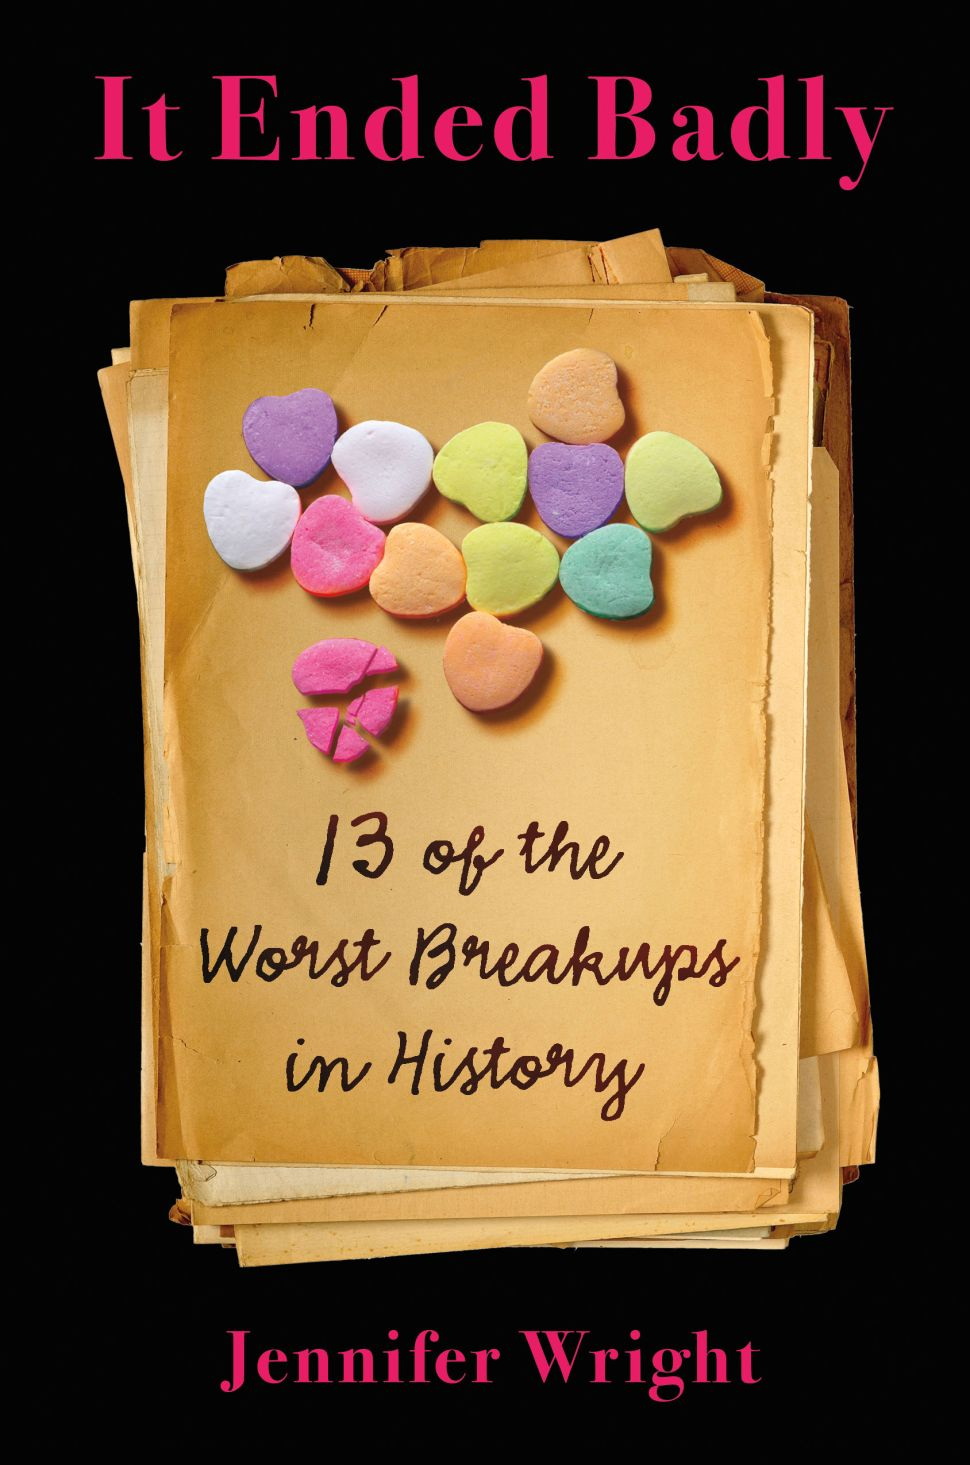 Exclusive Excerpt: 'It Ended Badly: 13 of the Worst Breakups in History'